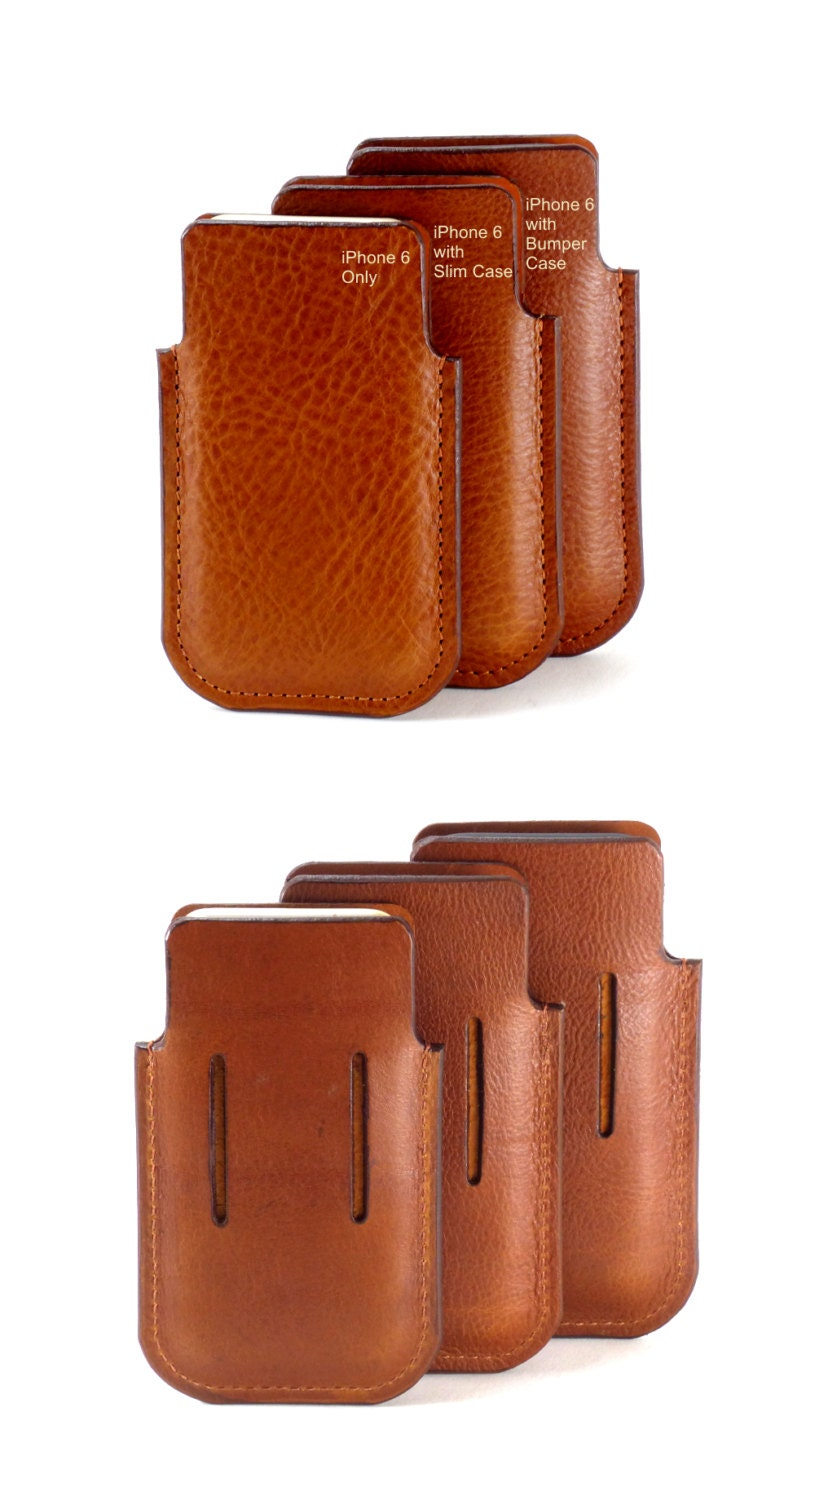 leather iphone 6 7 holster in 3 sizes with integral belt loop